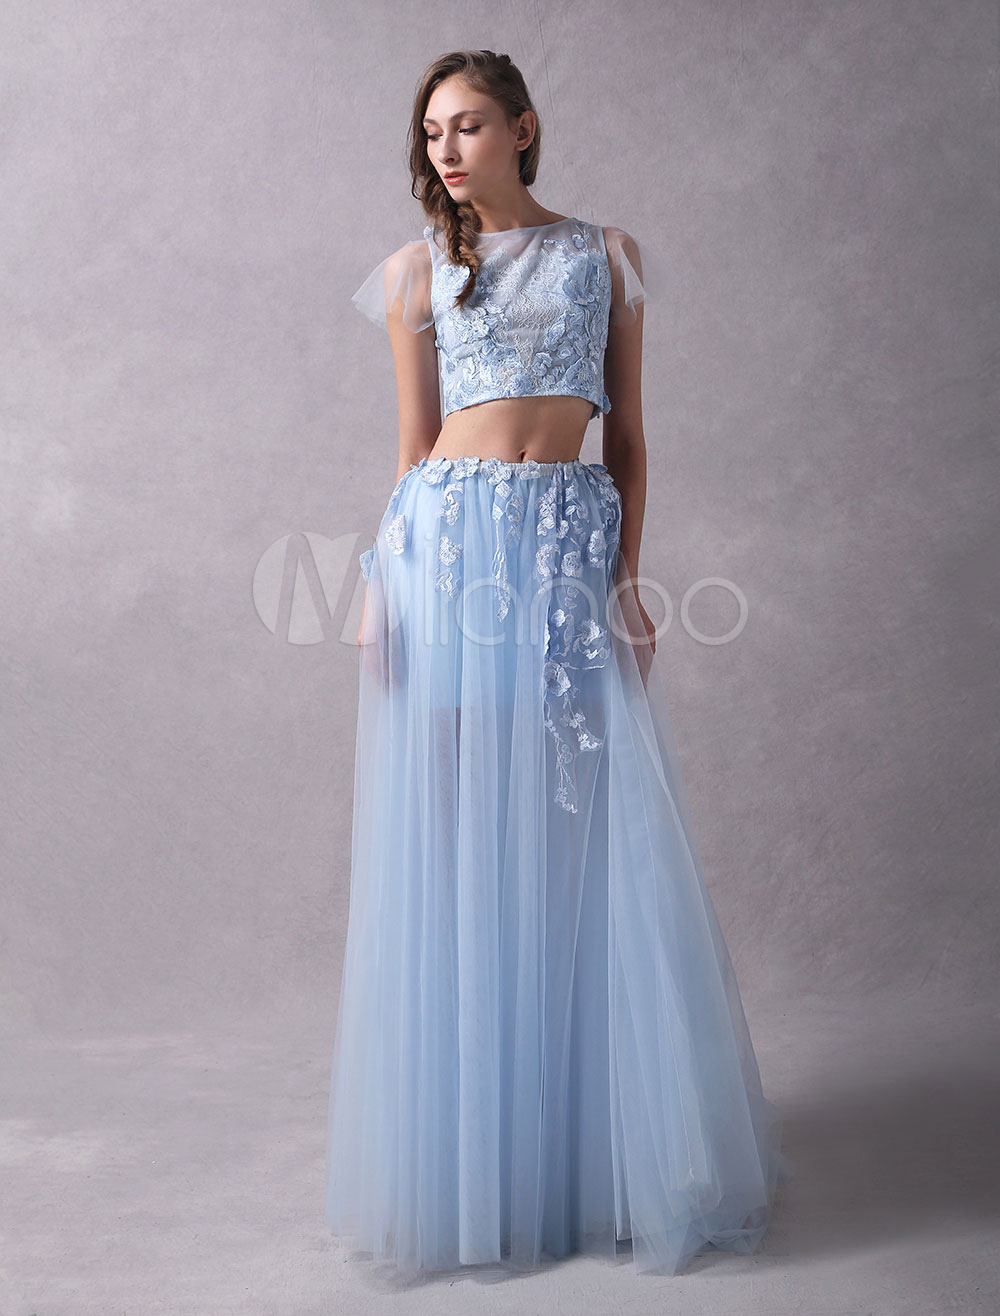 29c1cdcac6046 ... Prom Dresses Two Piece Lace Flowers Applique Short Sleeve Tulle Baby  Blue Party Dresses-No. 12. 45%OFF. Color:Baby blue